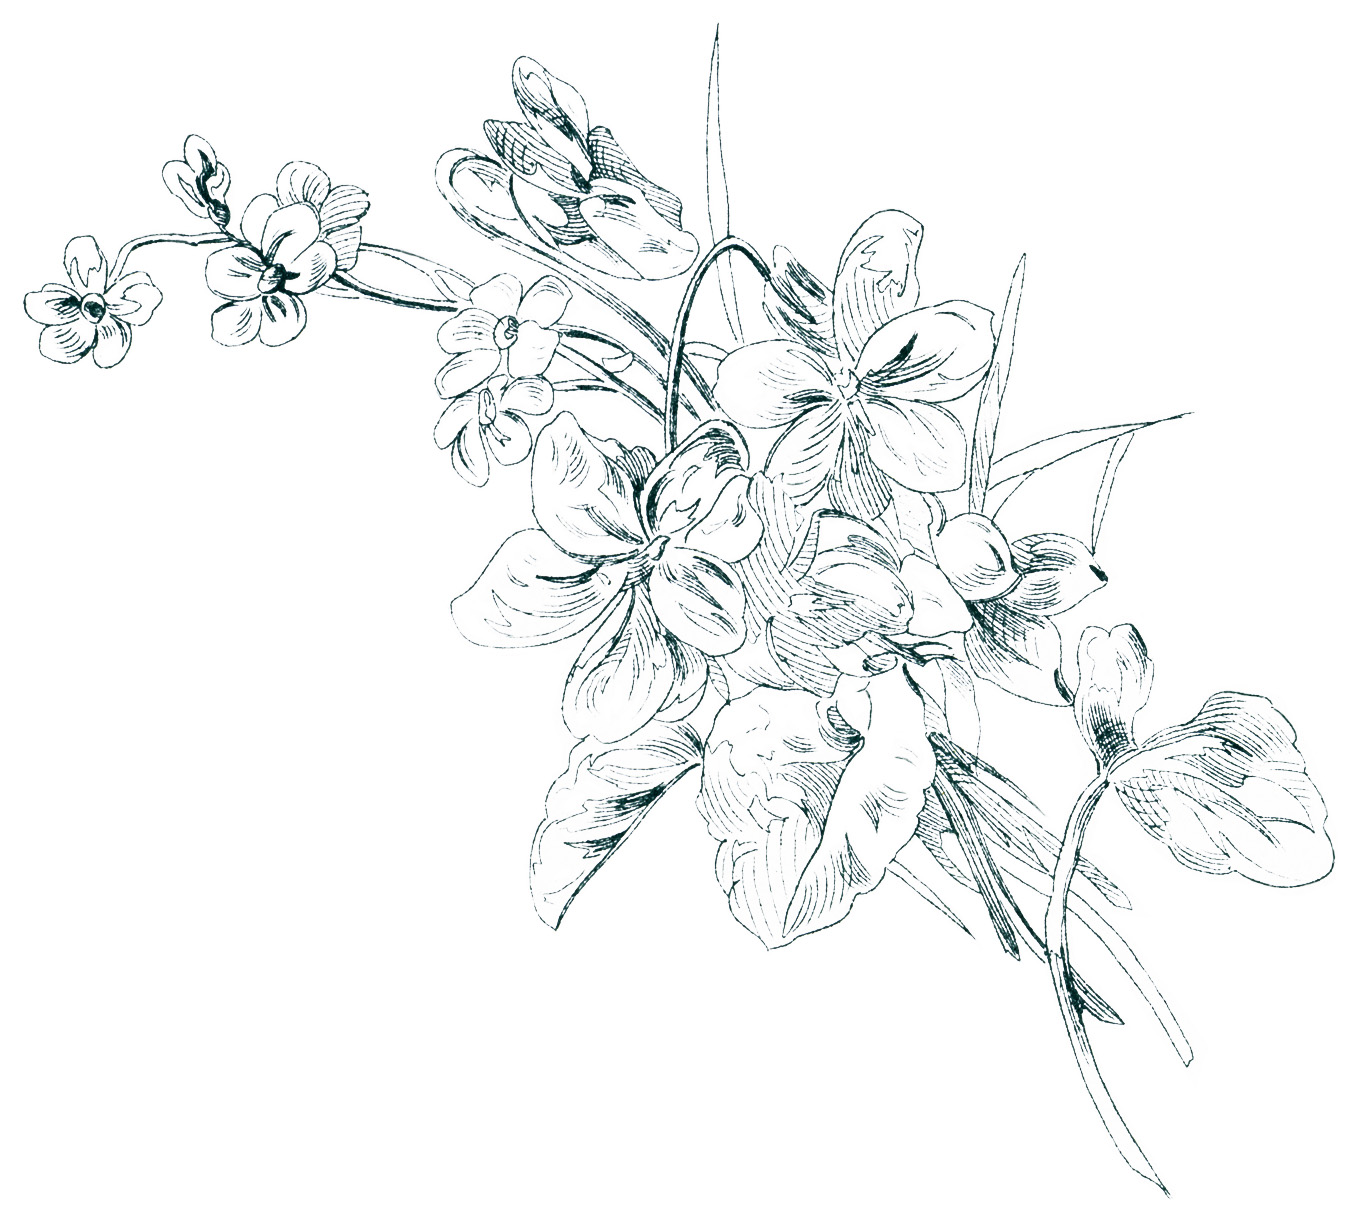 Free Vintage Image Floral Sketch | Old Design Shop Blog